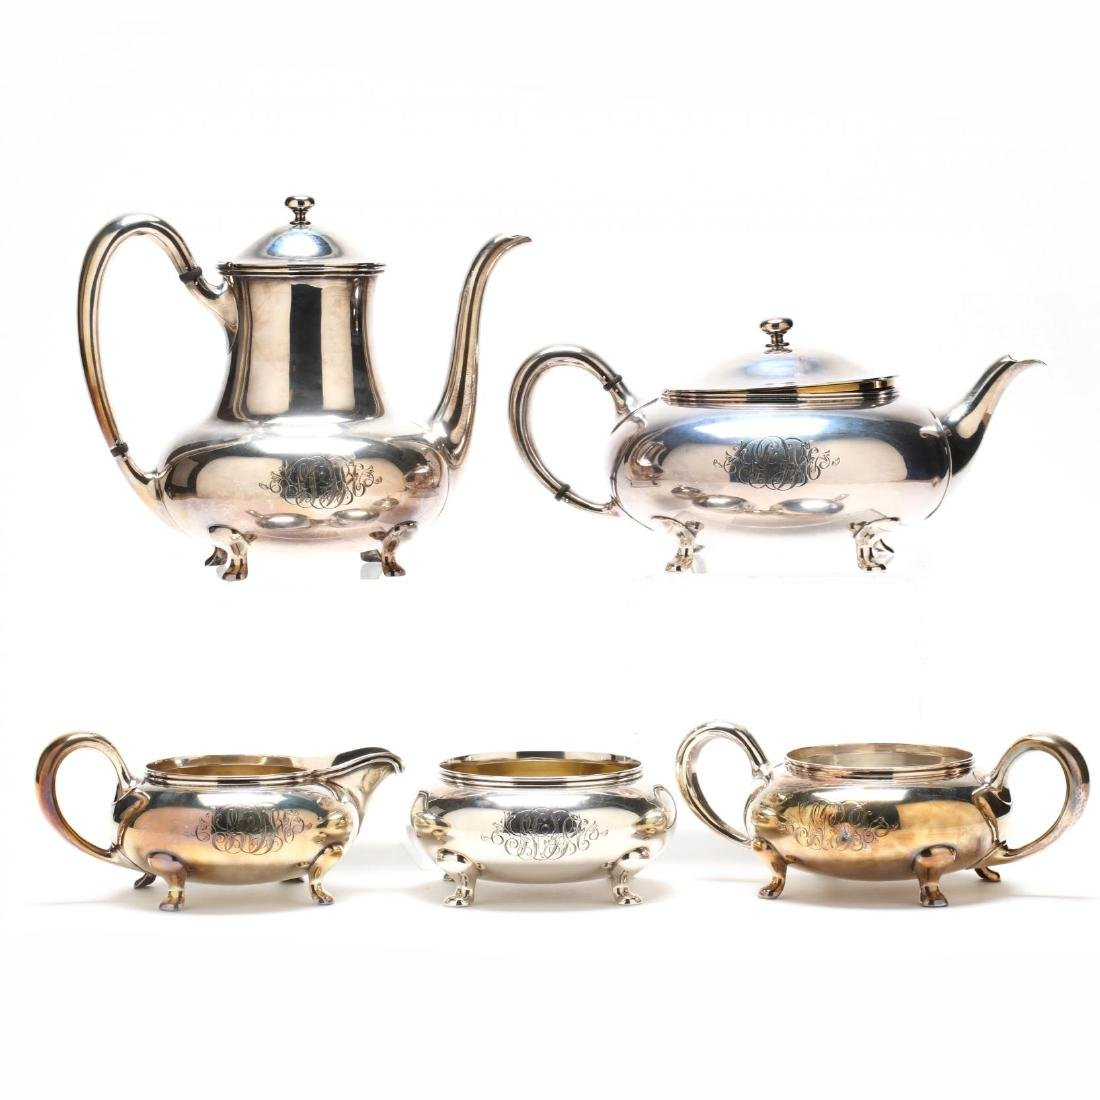 Towle Sterling Silver Tea & Coffee Service